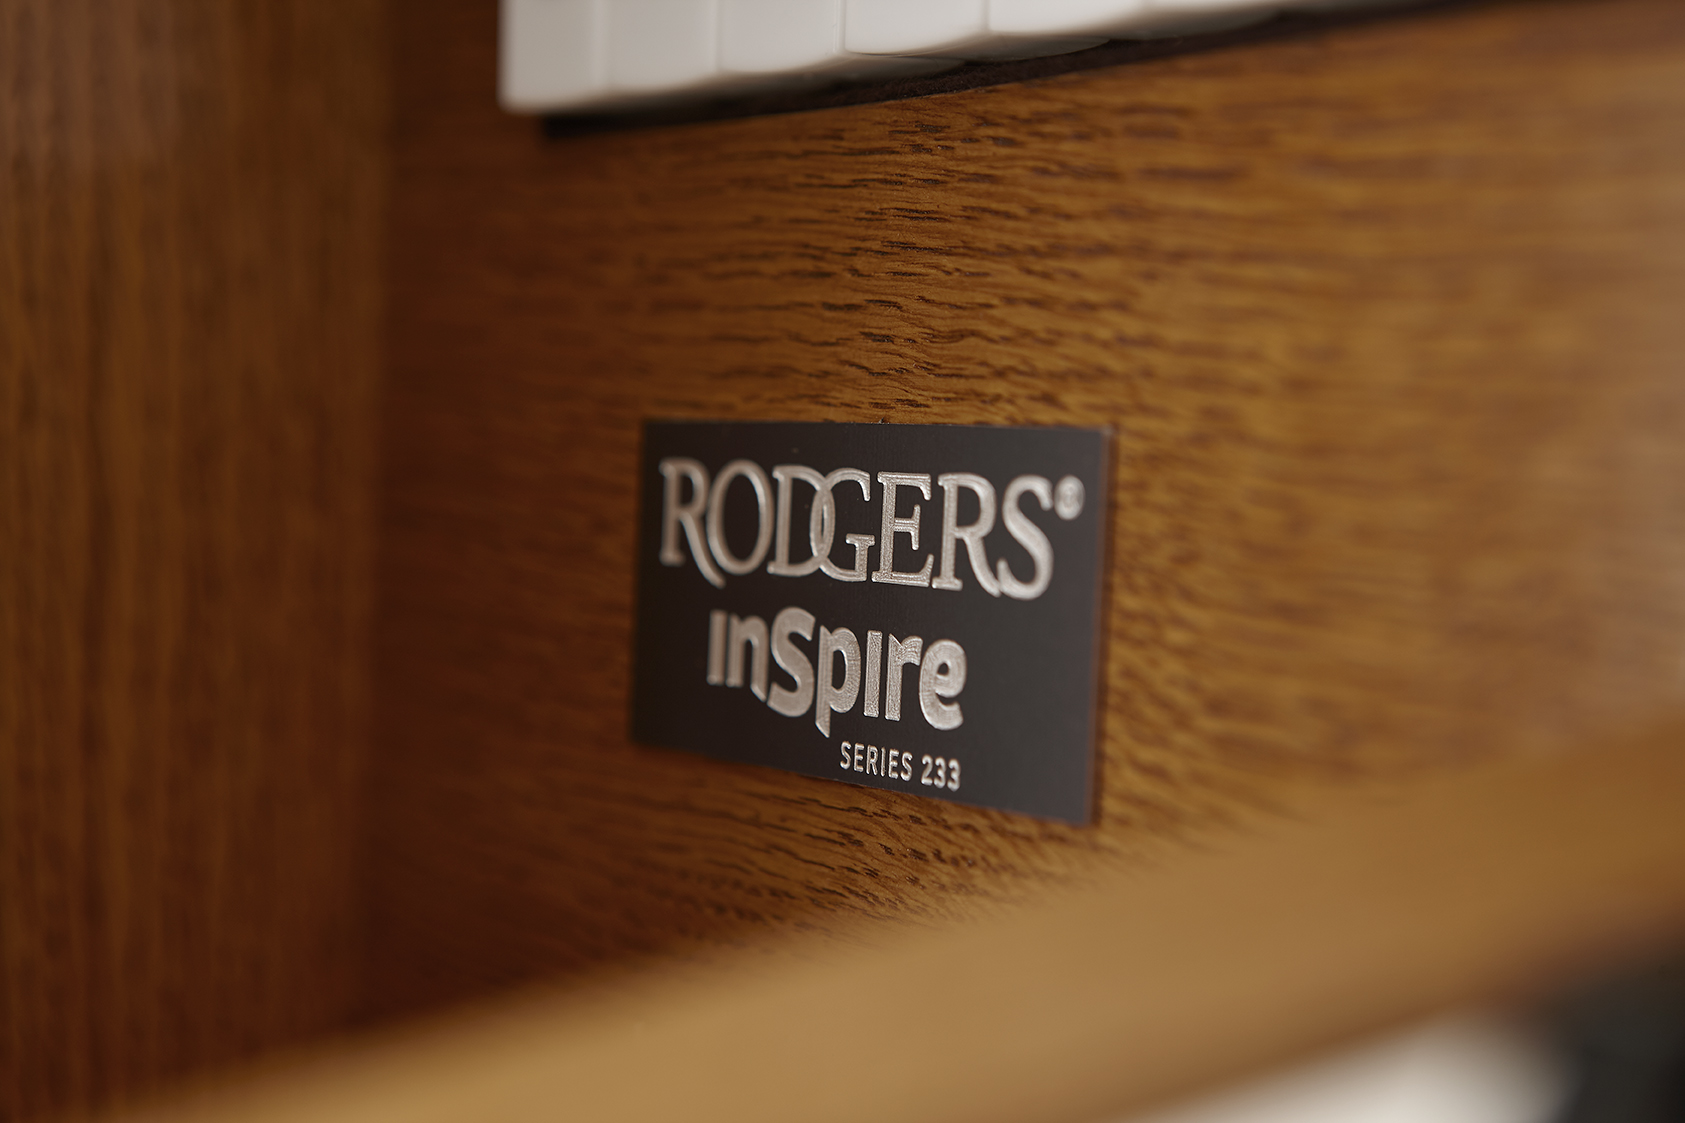 RODGERS_INSPIRE_SR233_DETAIL_5